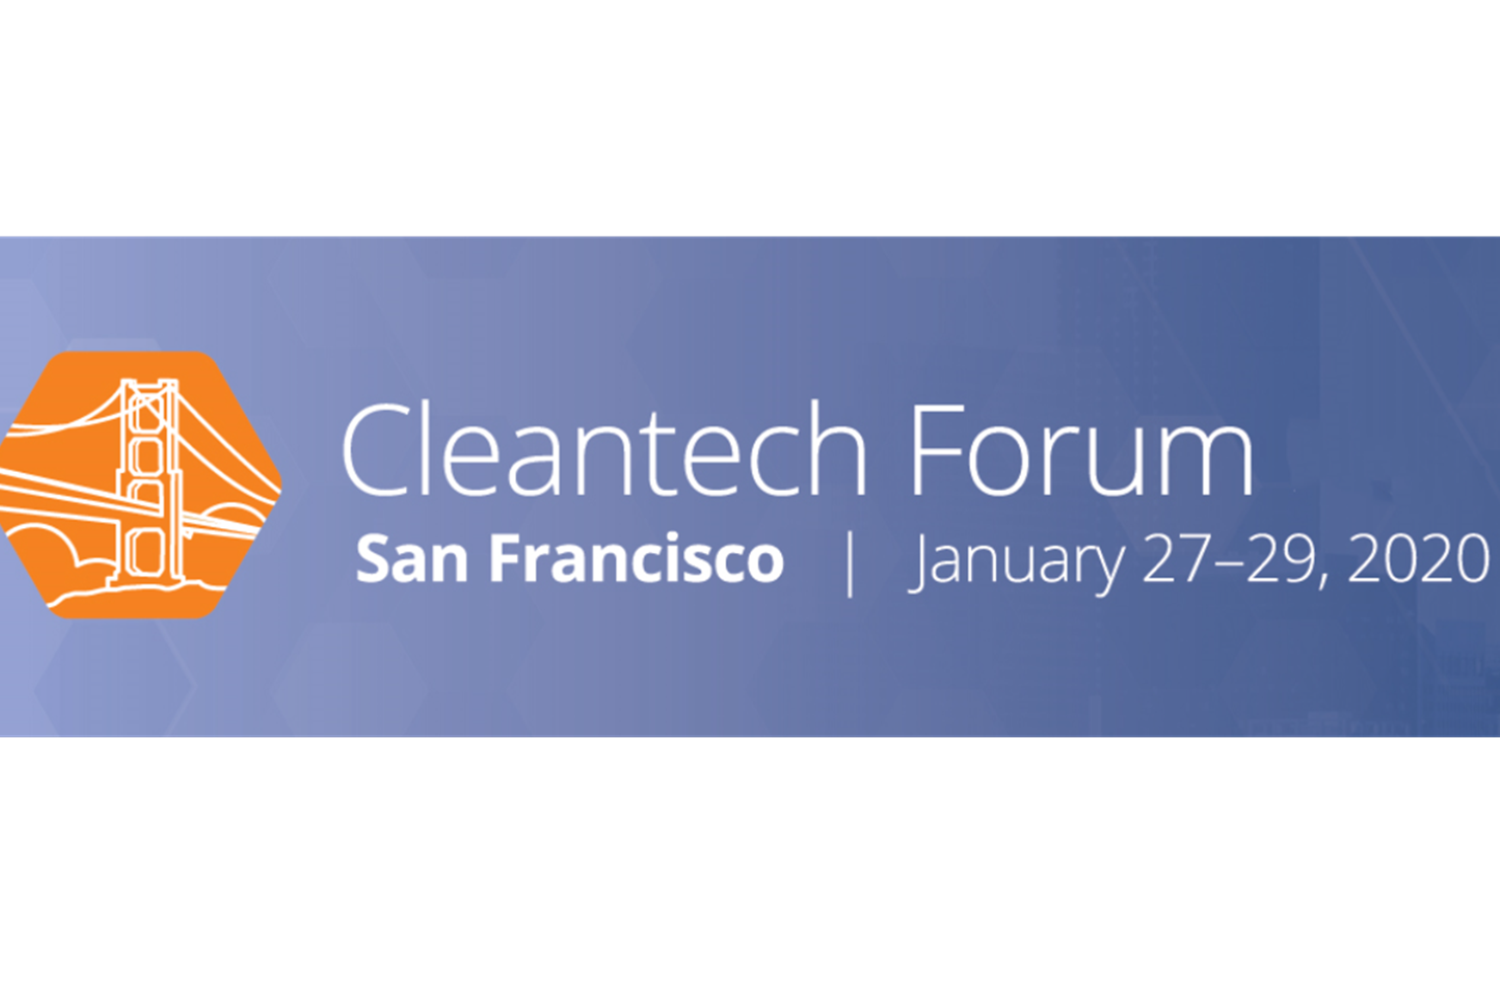 Cleantech Forum